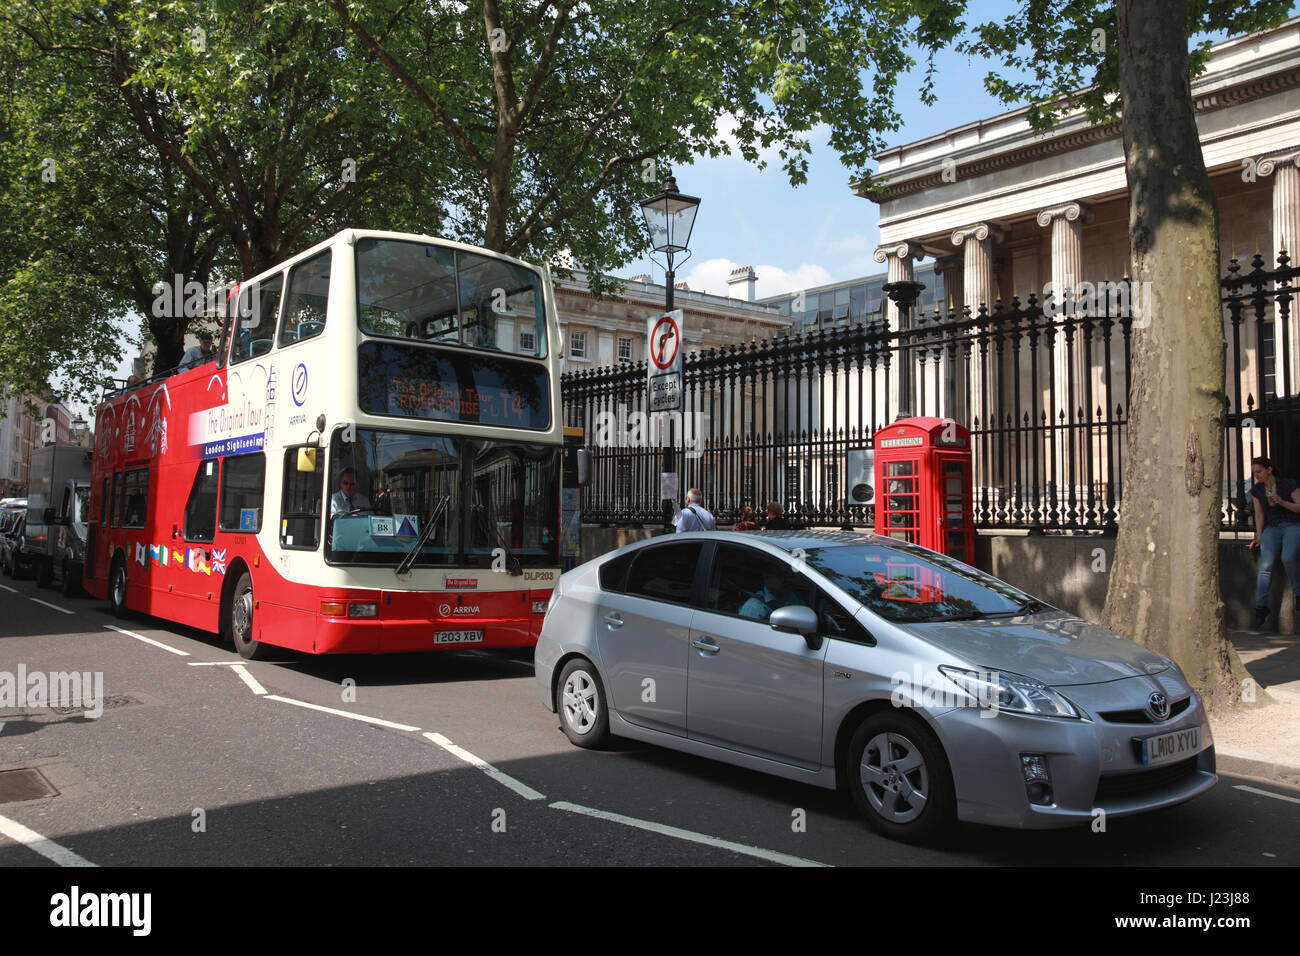 """One of """"The Original Tour"""" sightseeing buses outside the British Museum - Stock Image"""